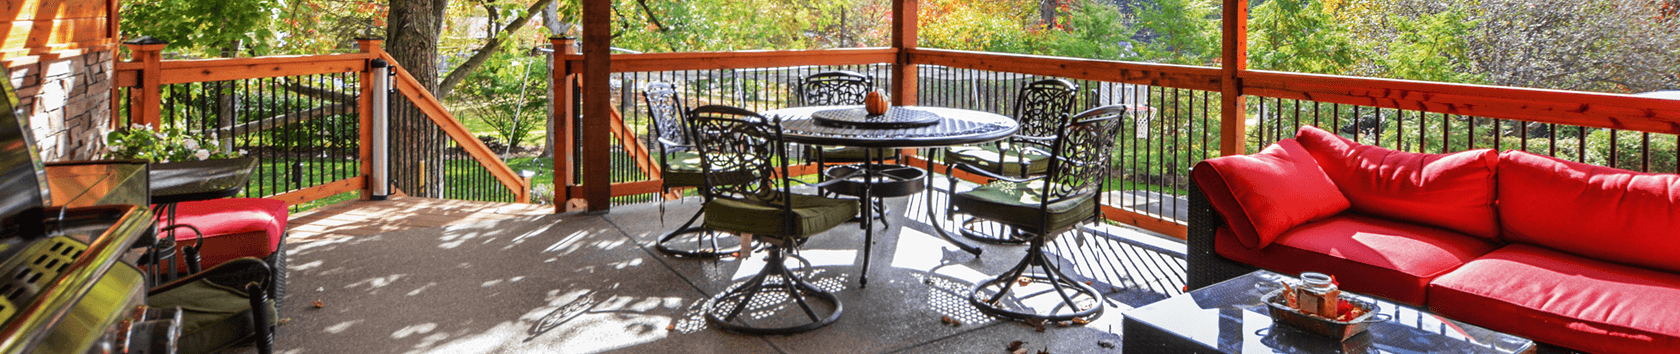 Another Example of our Outdoor Remodeling Services in Pittsburgh